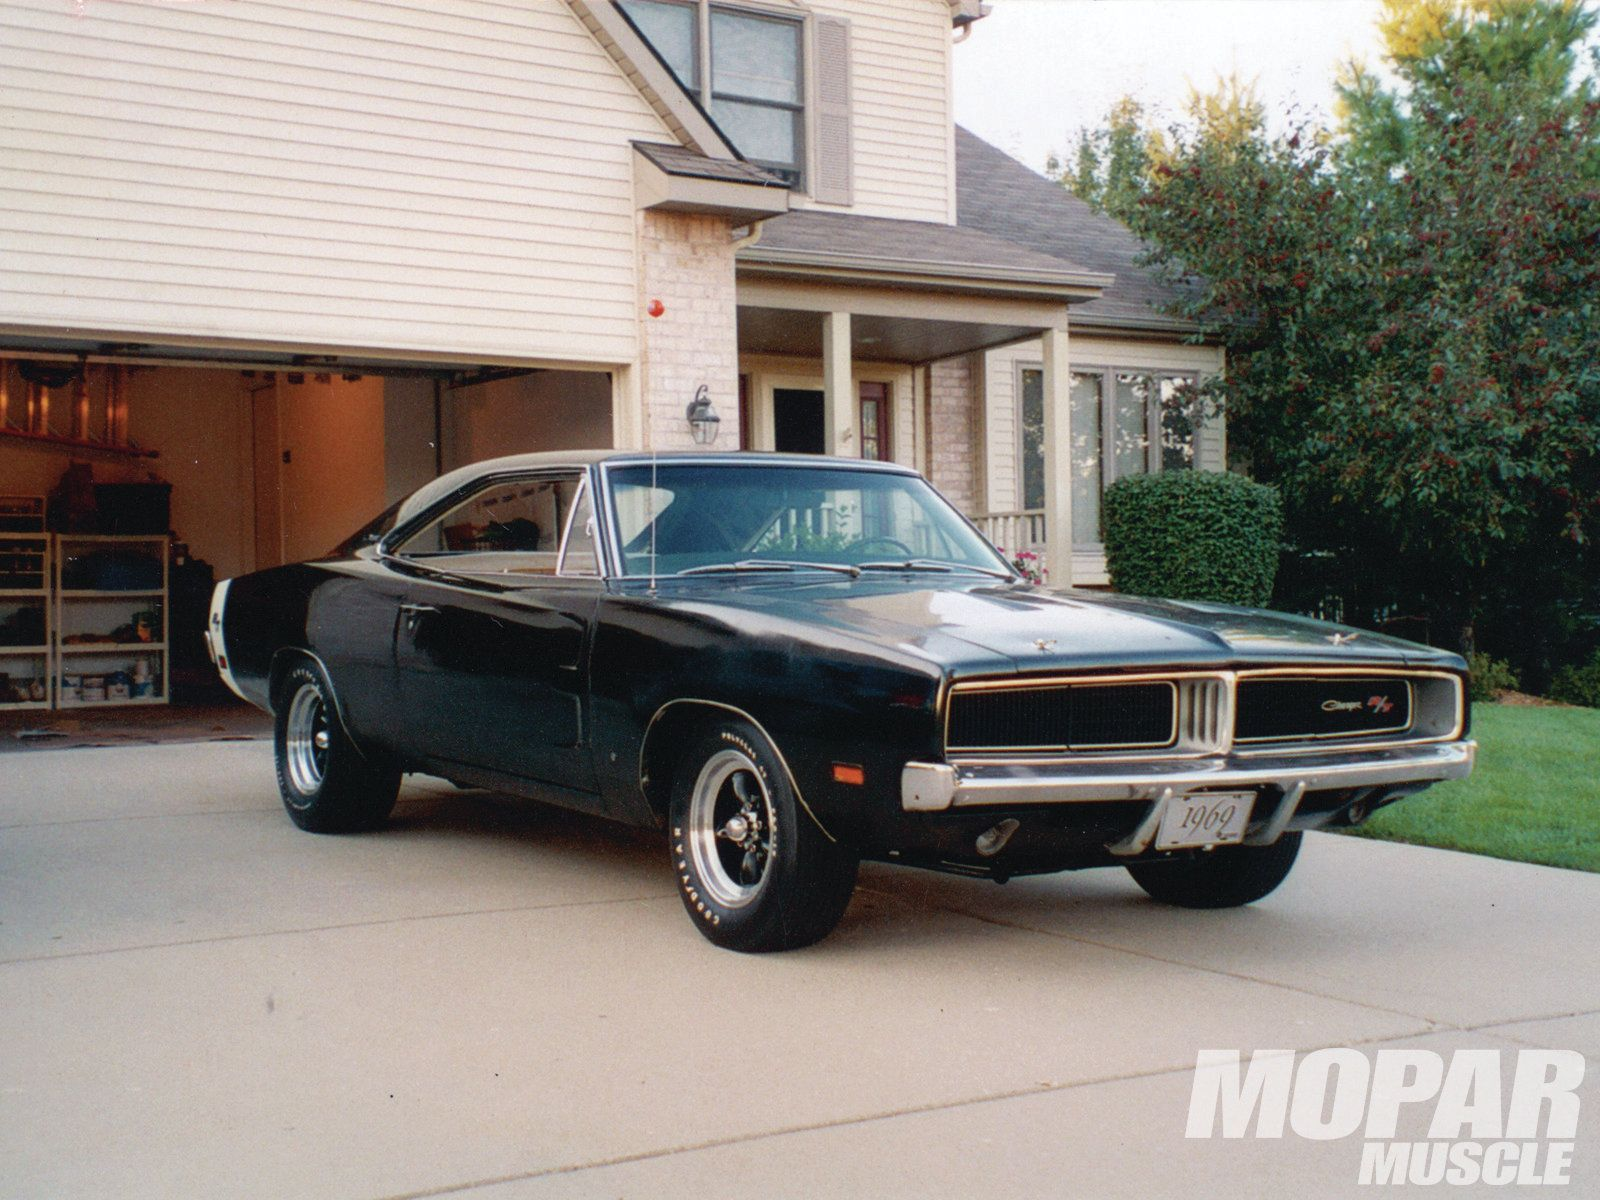 Many car enthusiast want to have their own roaring muscle car before getting one it is good to know about the amazing muscle cars then and now